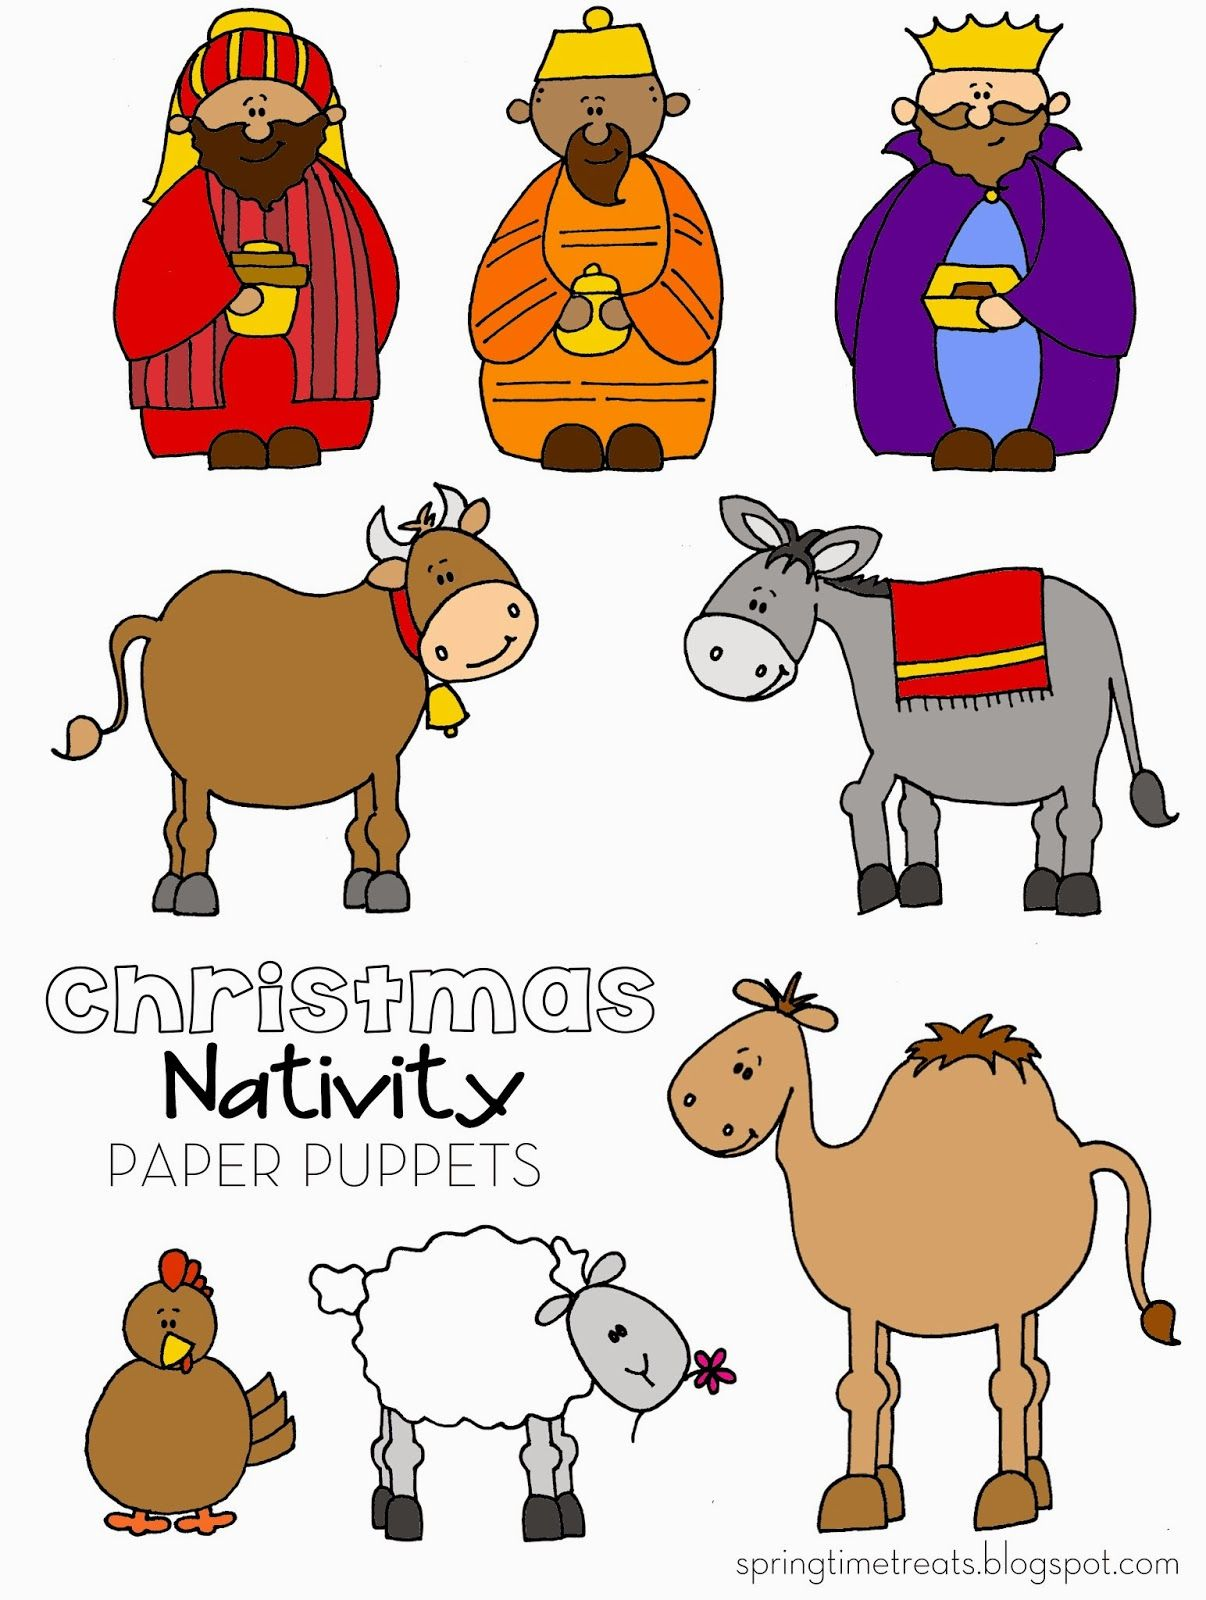 Spring Time Treats: Nativity paper puppets - FREE printables ...